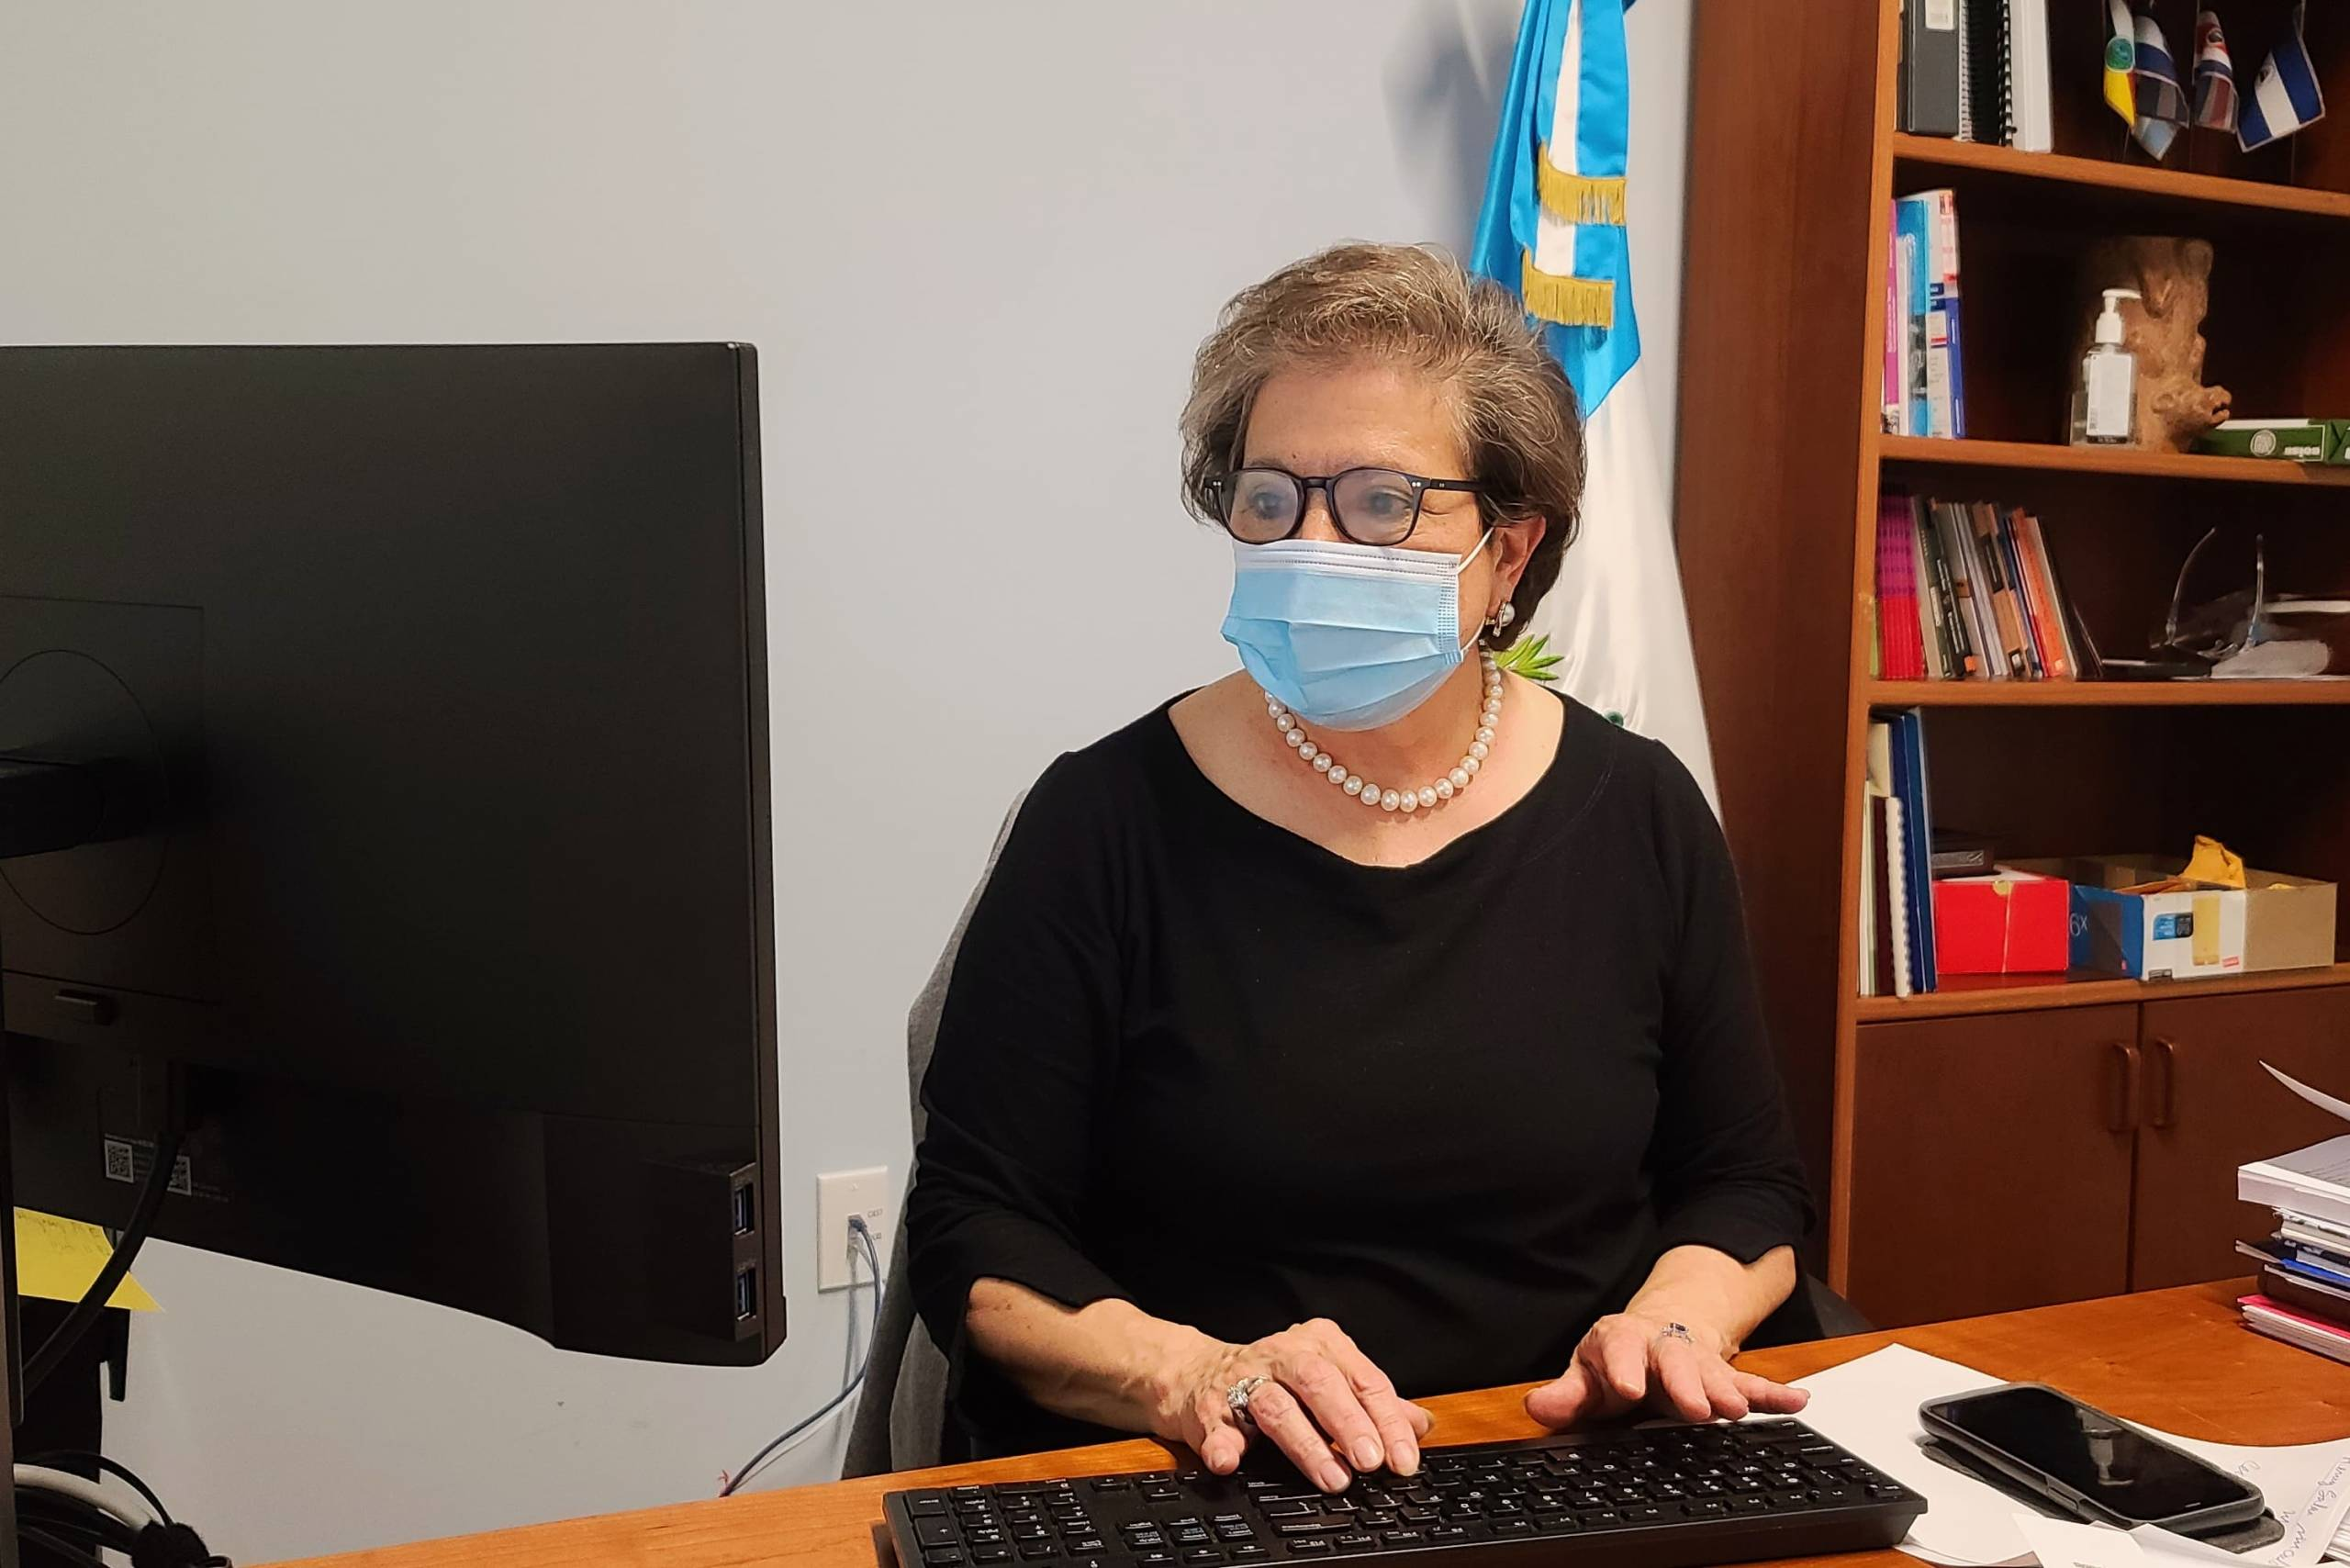 Sylvia Wohlers Gomar de Meie, the Guatemalan consul general in San Francisco, types on her computer in her office. She is wearing glasses and a blue facemask.